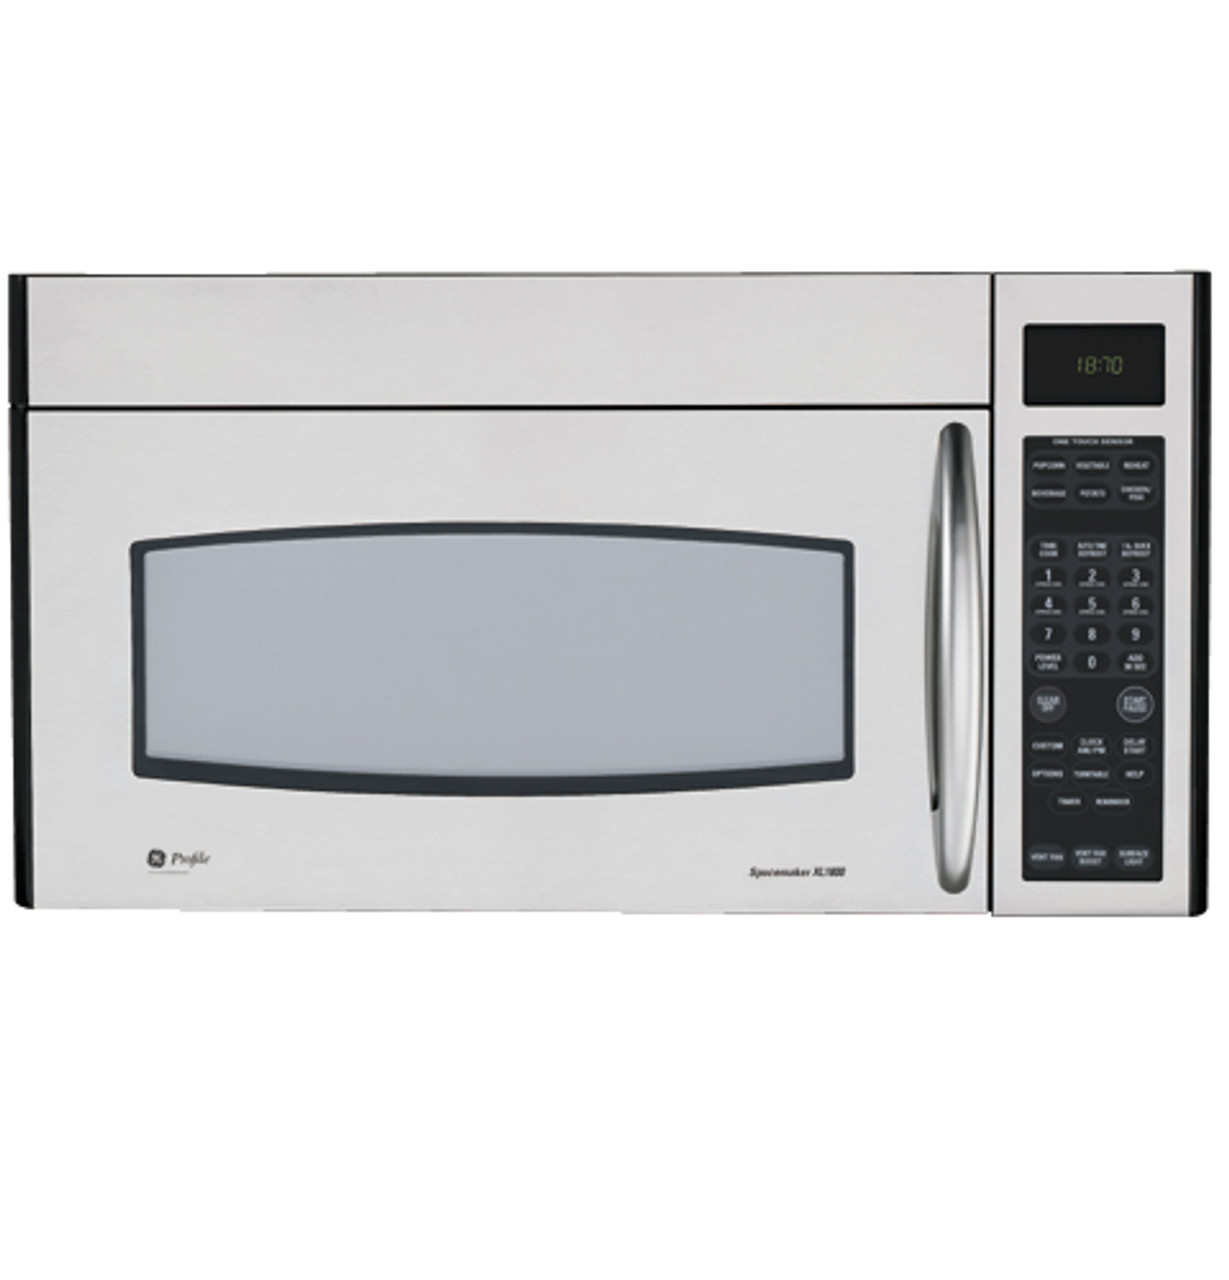 ge profile spacemaker xl1800 microwave oven jvm1870sf